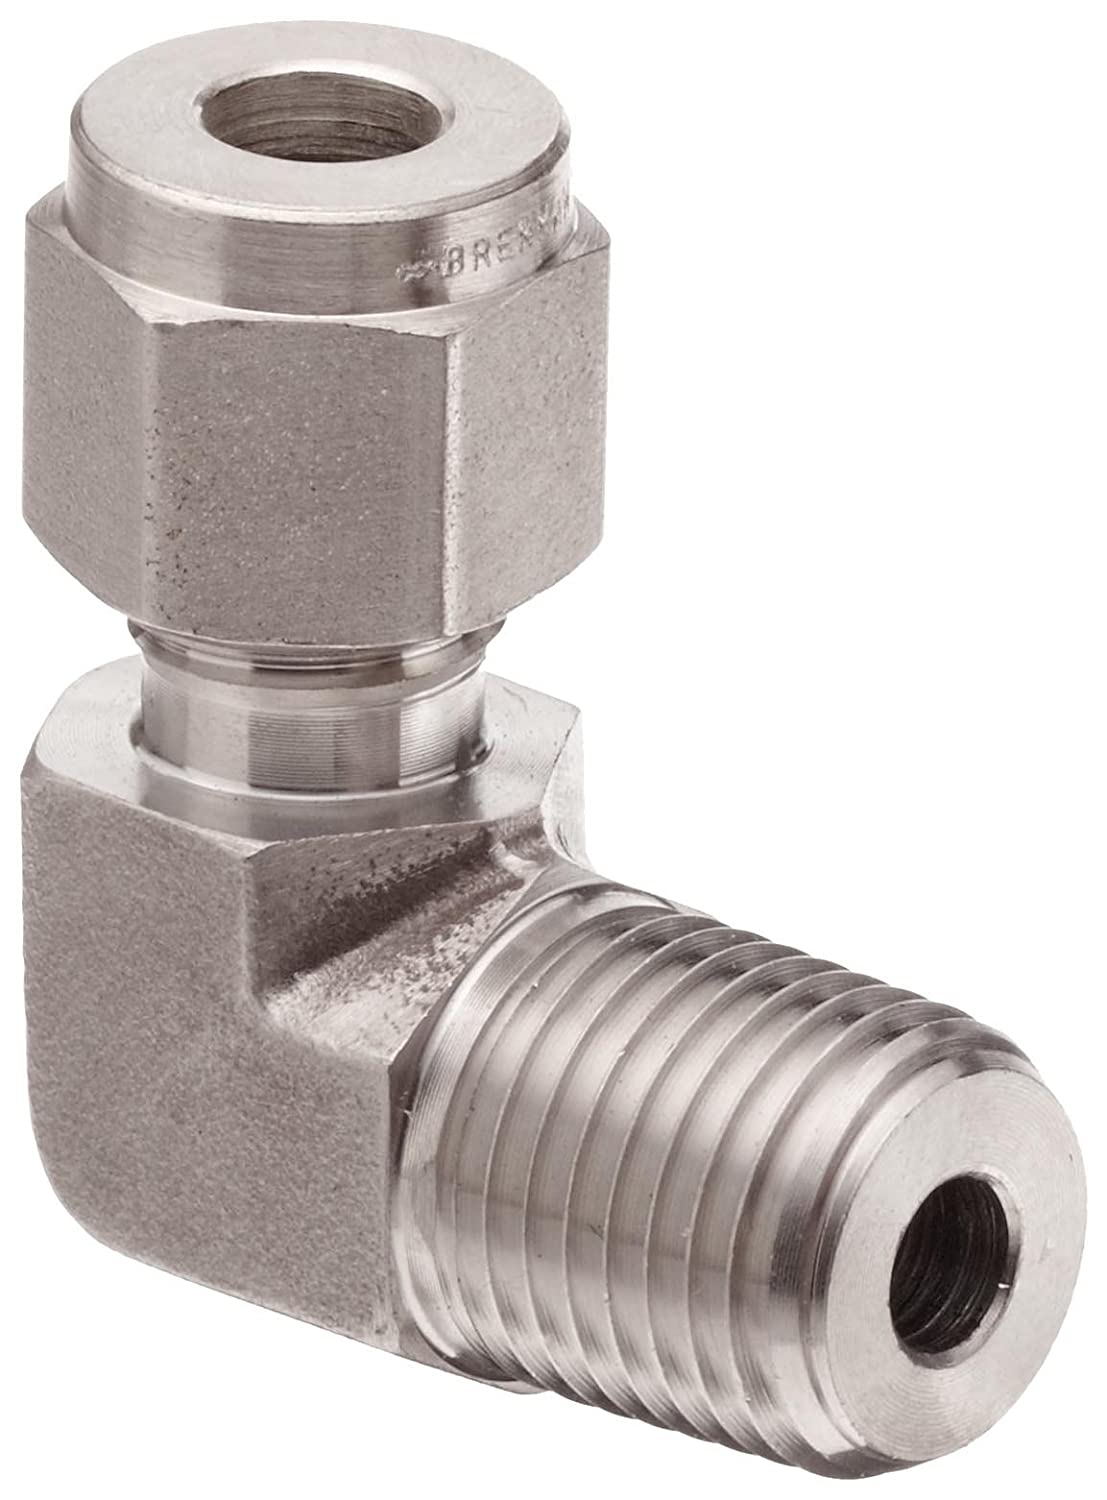 Brennan N2501-04-02-SS Stainless Steel Compression Time sale Fitting Tube Ranking TOP14